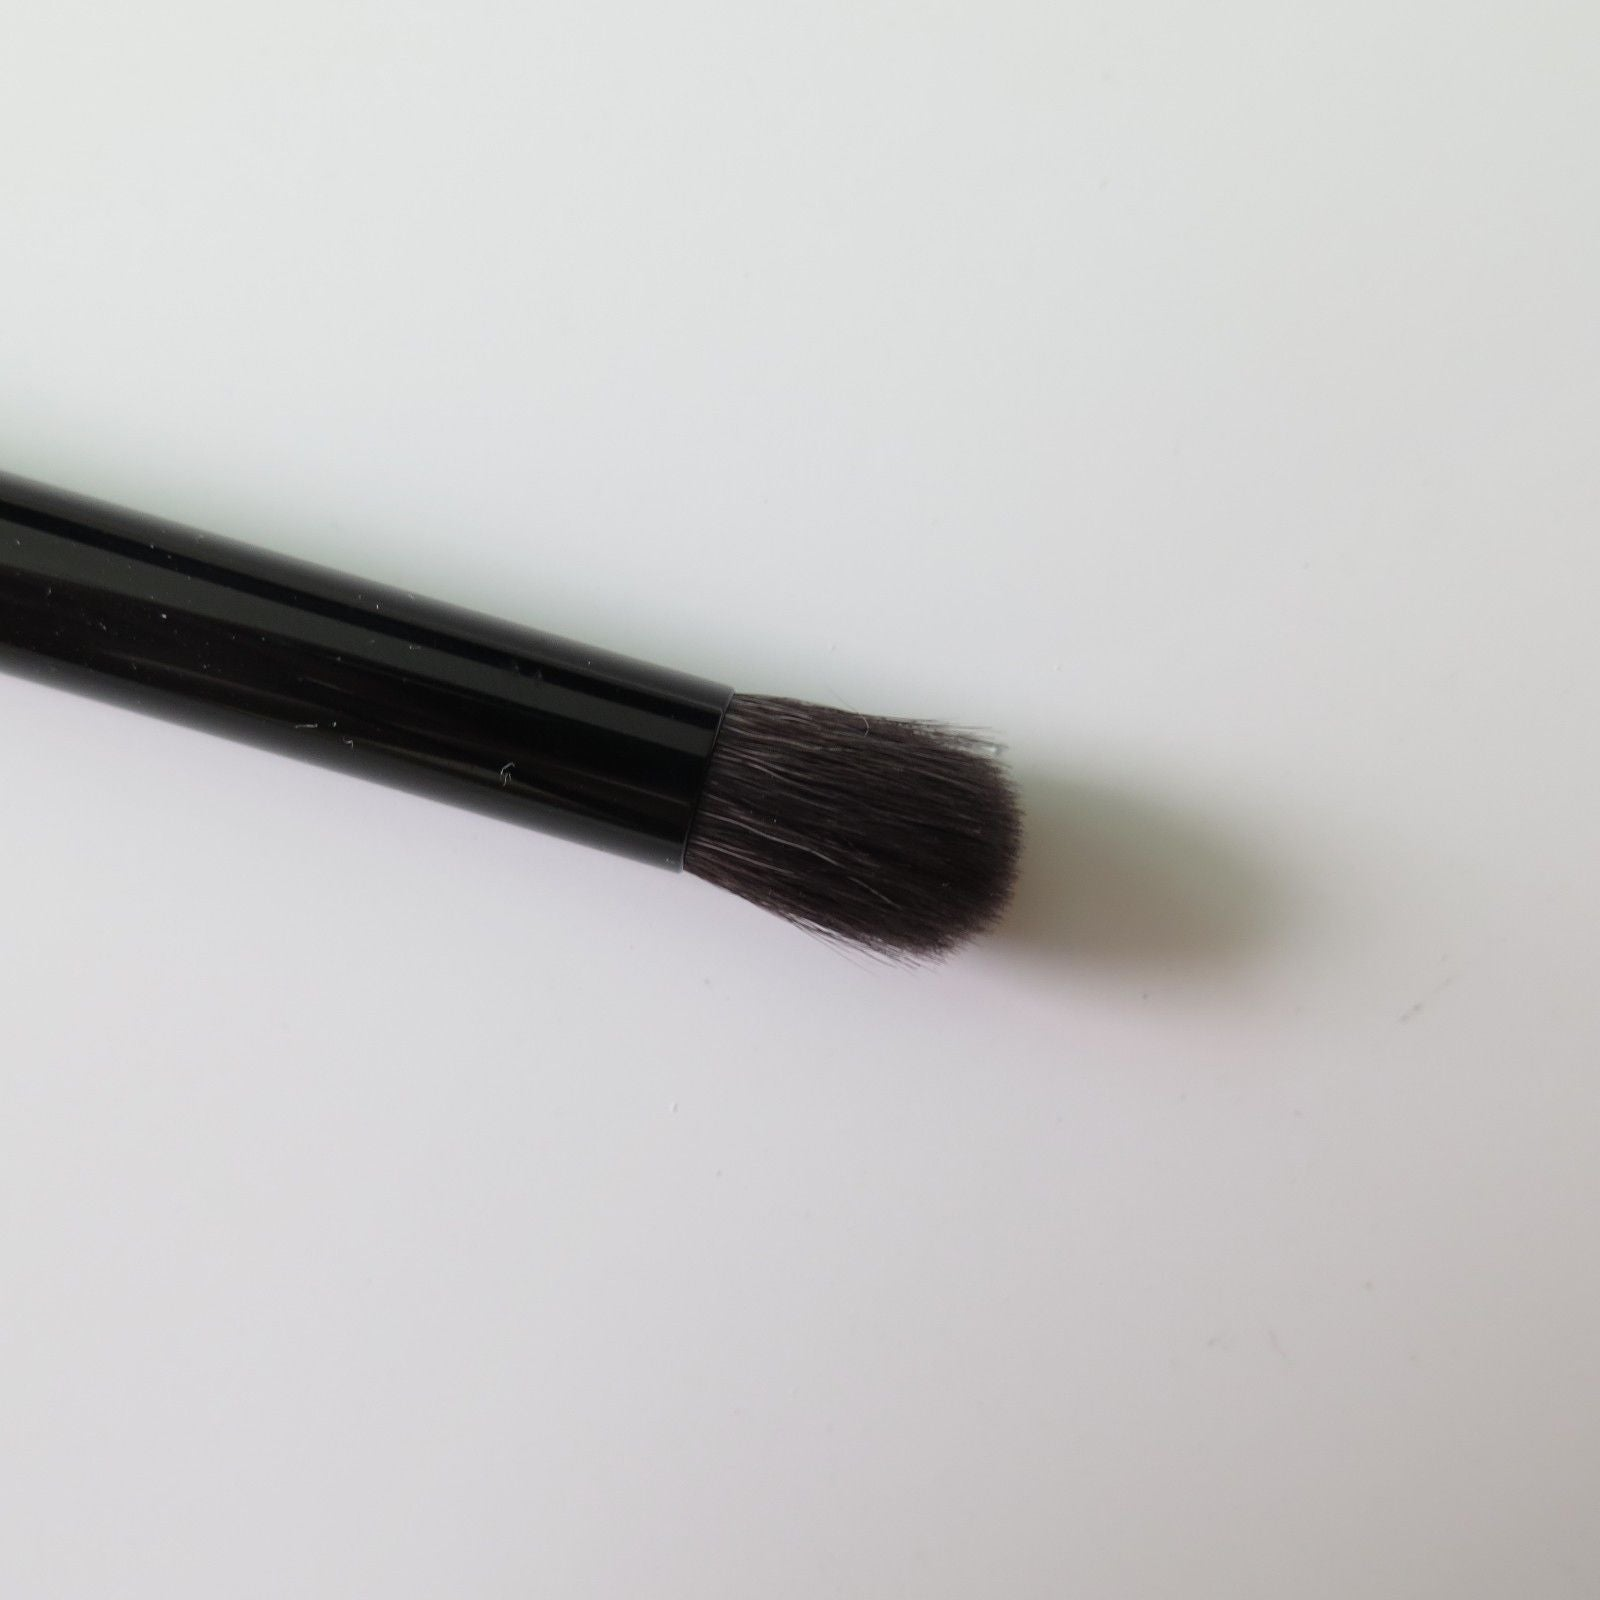 SUQQU Eye Shadow Brush Medium M Brush